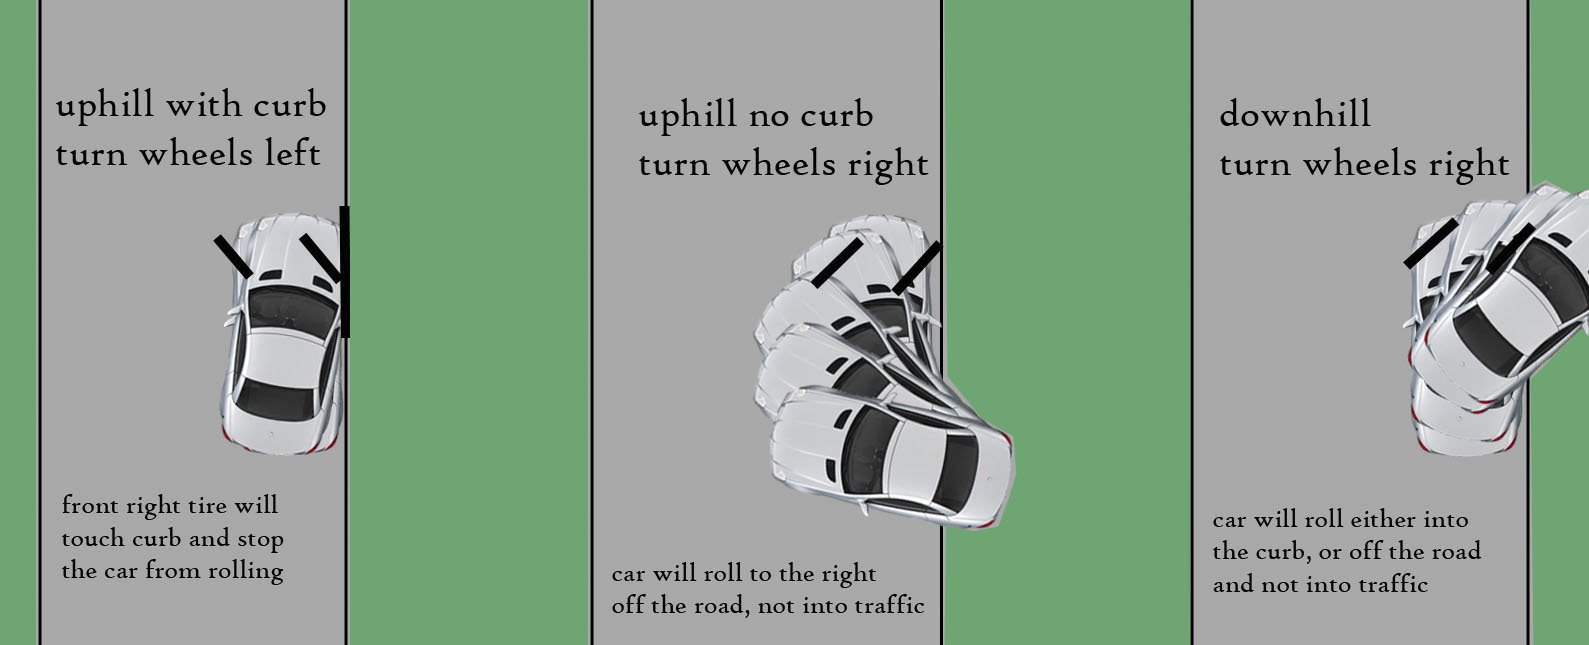 Park uphill without curb